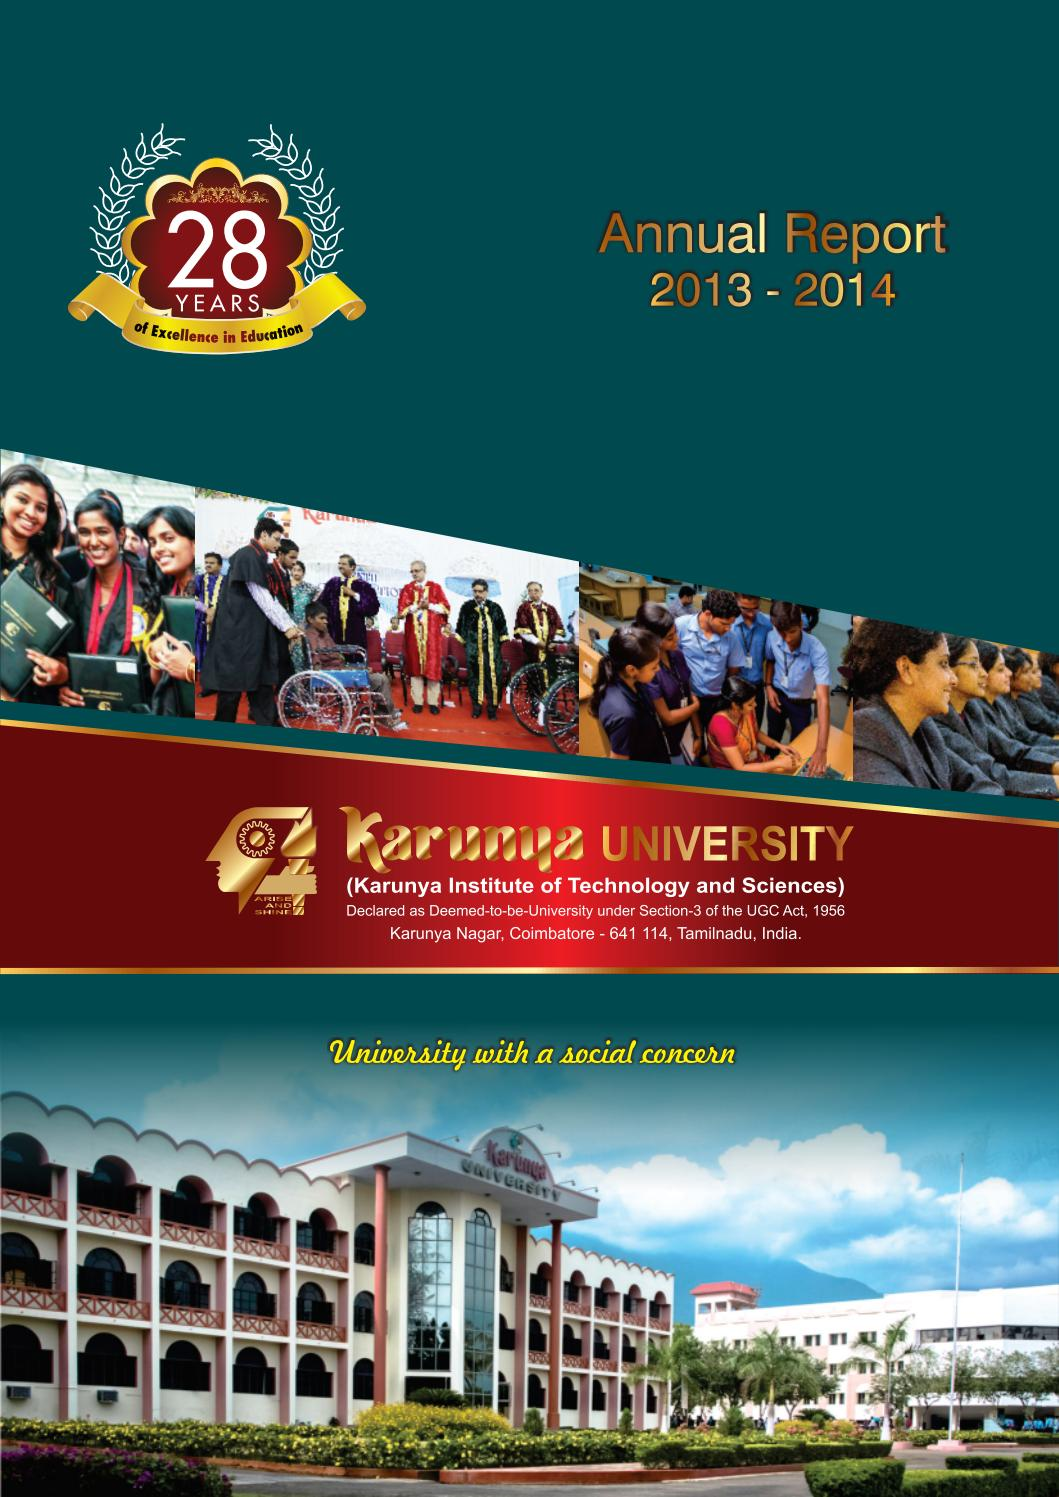 Annual Report 2013 14 By Karunya Institute Of Technology And Tricky 12v Battery Charger Circuit D Mohankumar Chargers Sciences Issuu